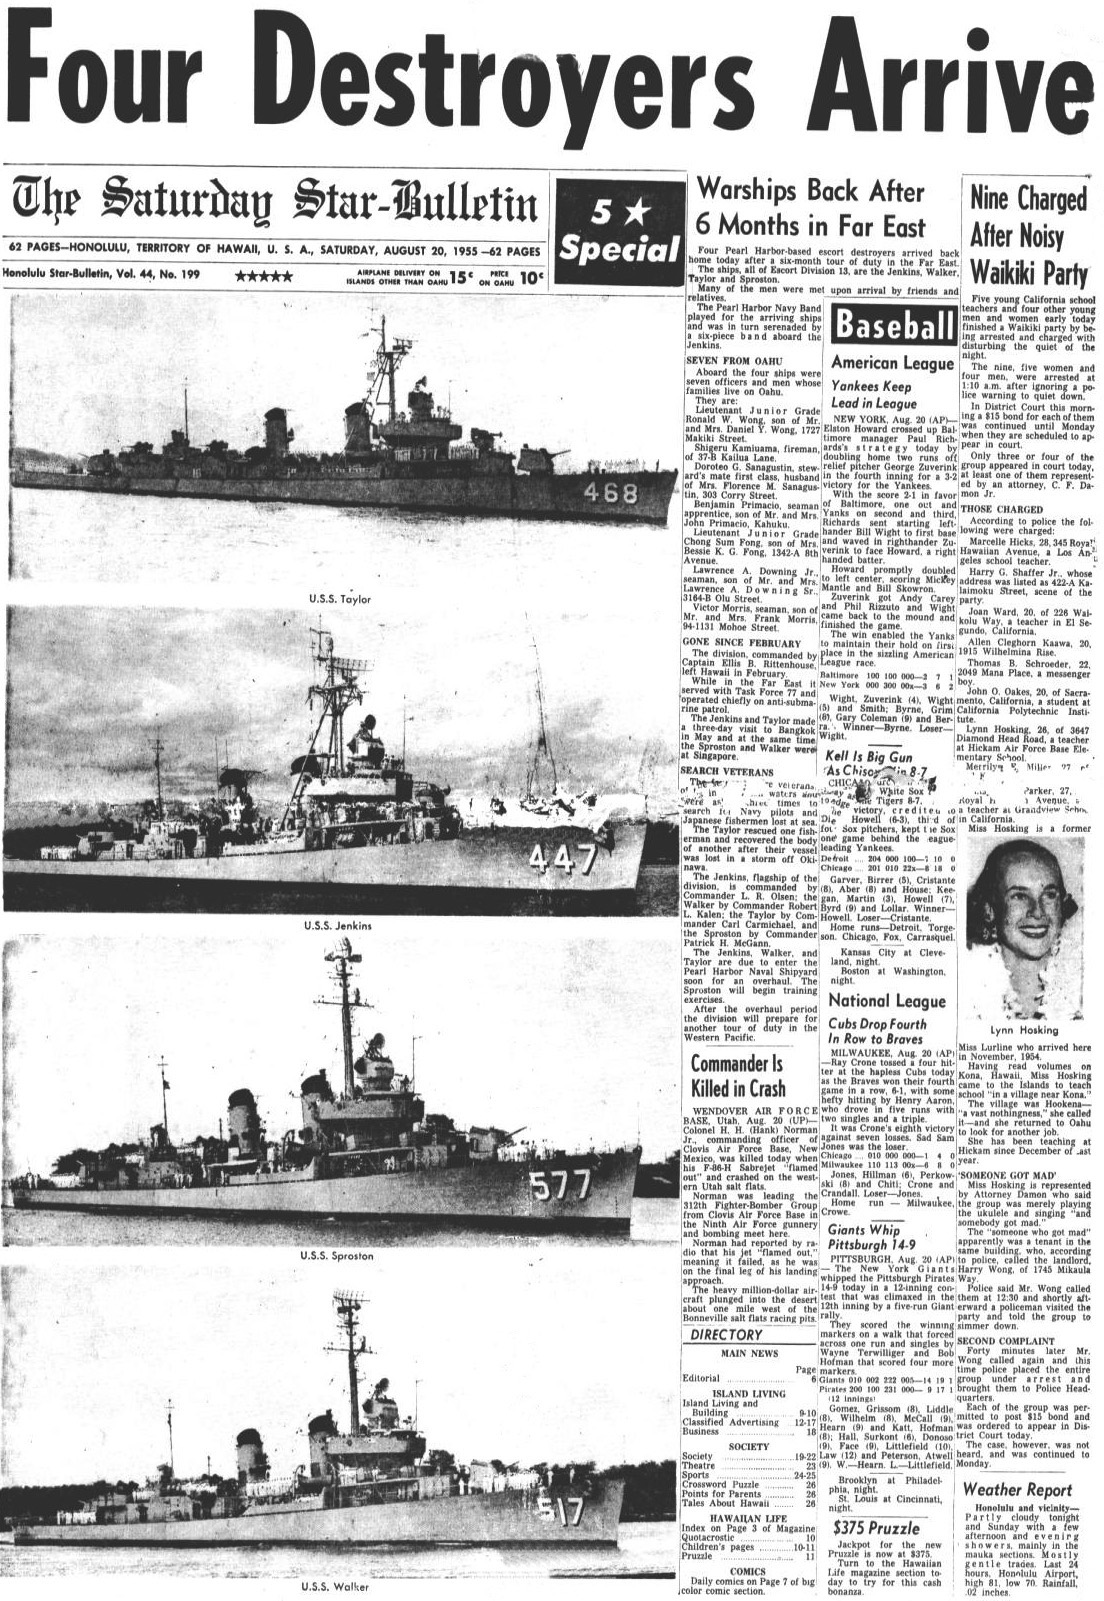 """Four Destroyers Arrive."" Article from the The Saturday Star-Bulletin - Saturday, August 20, 1955."